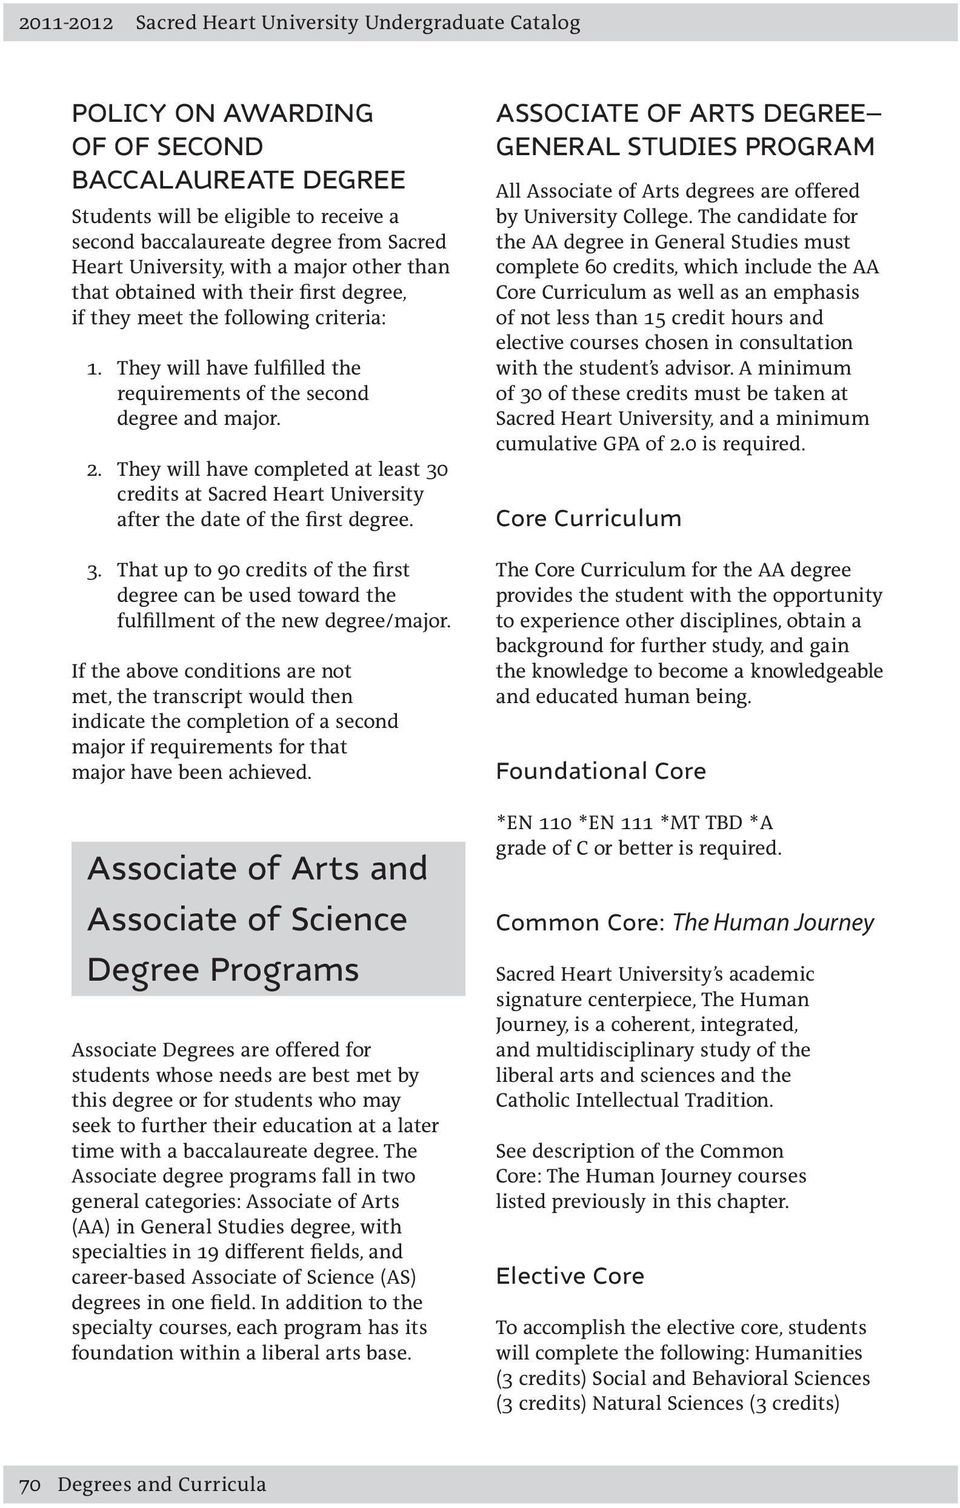 Philosophy broward college core subjects for aa degree